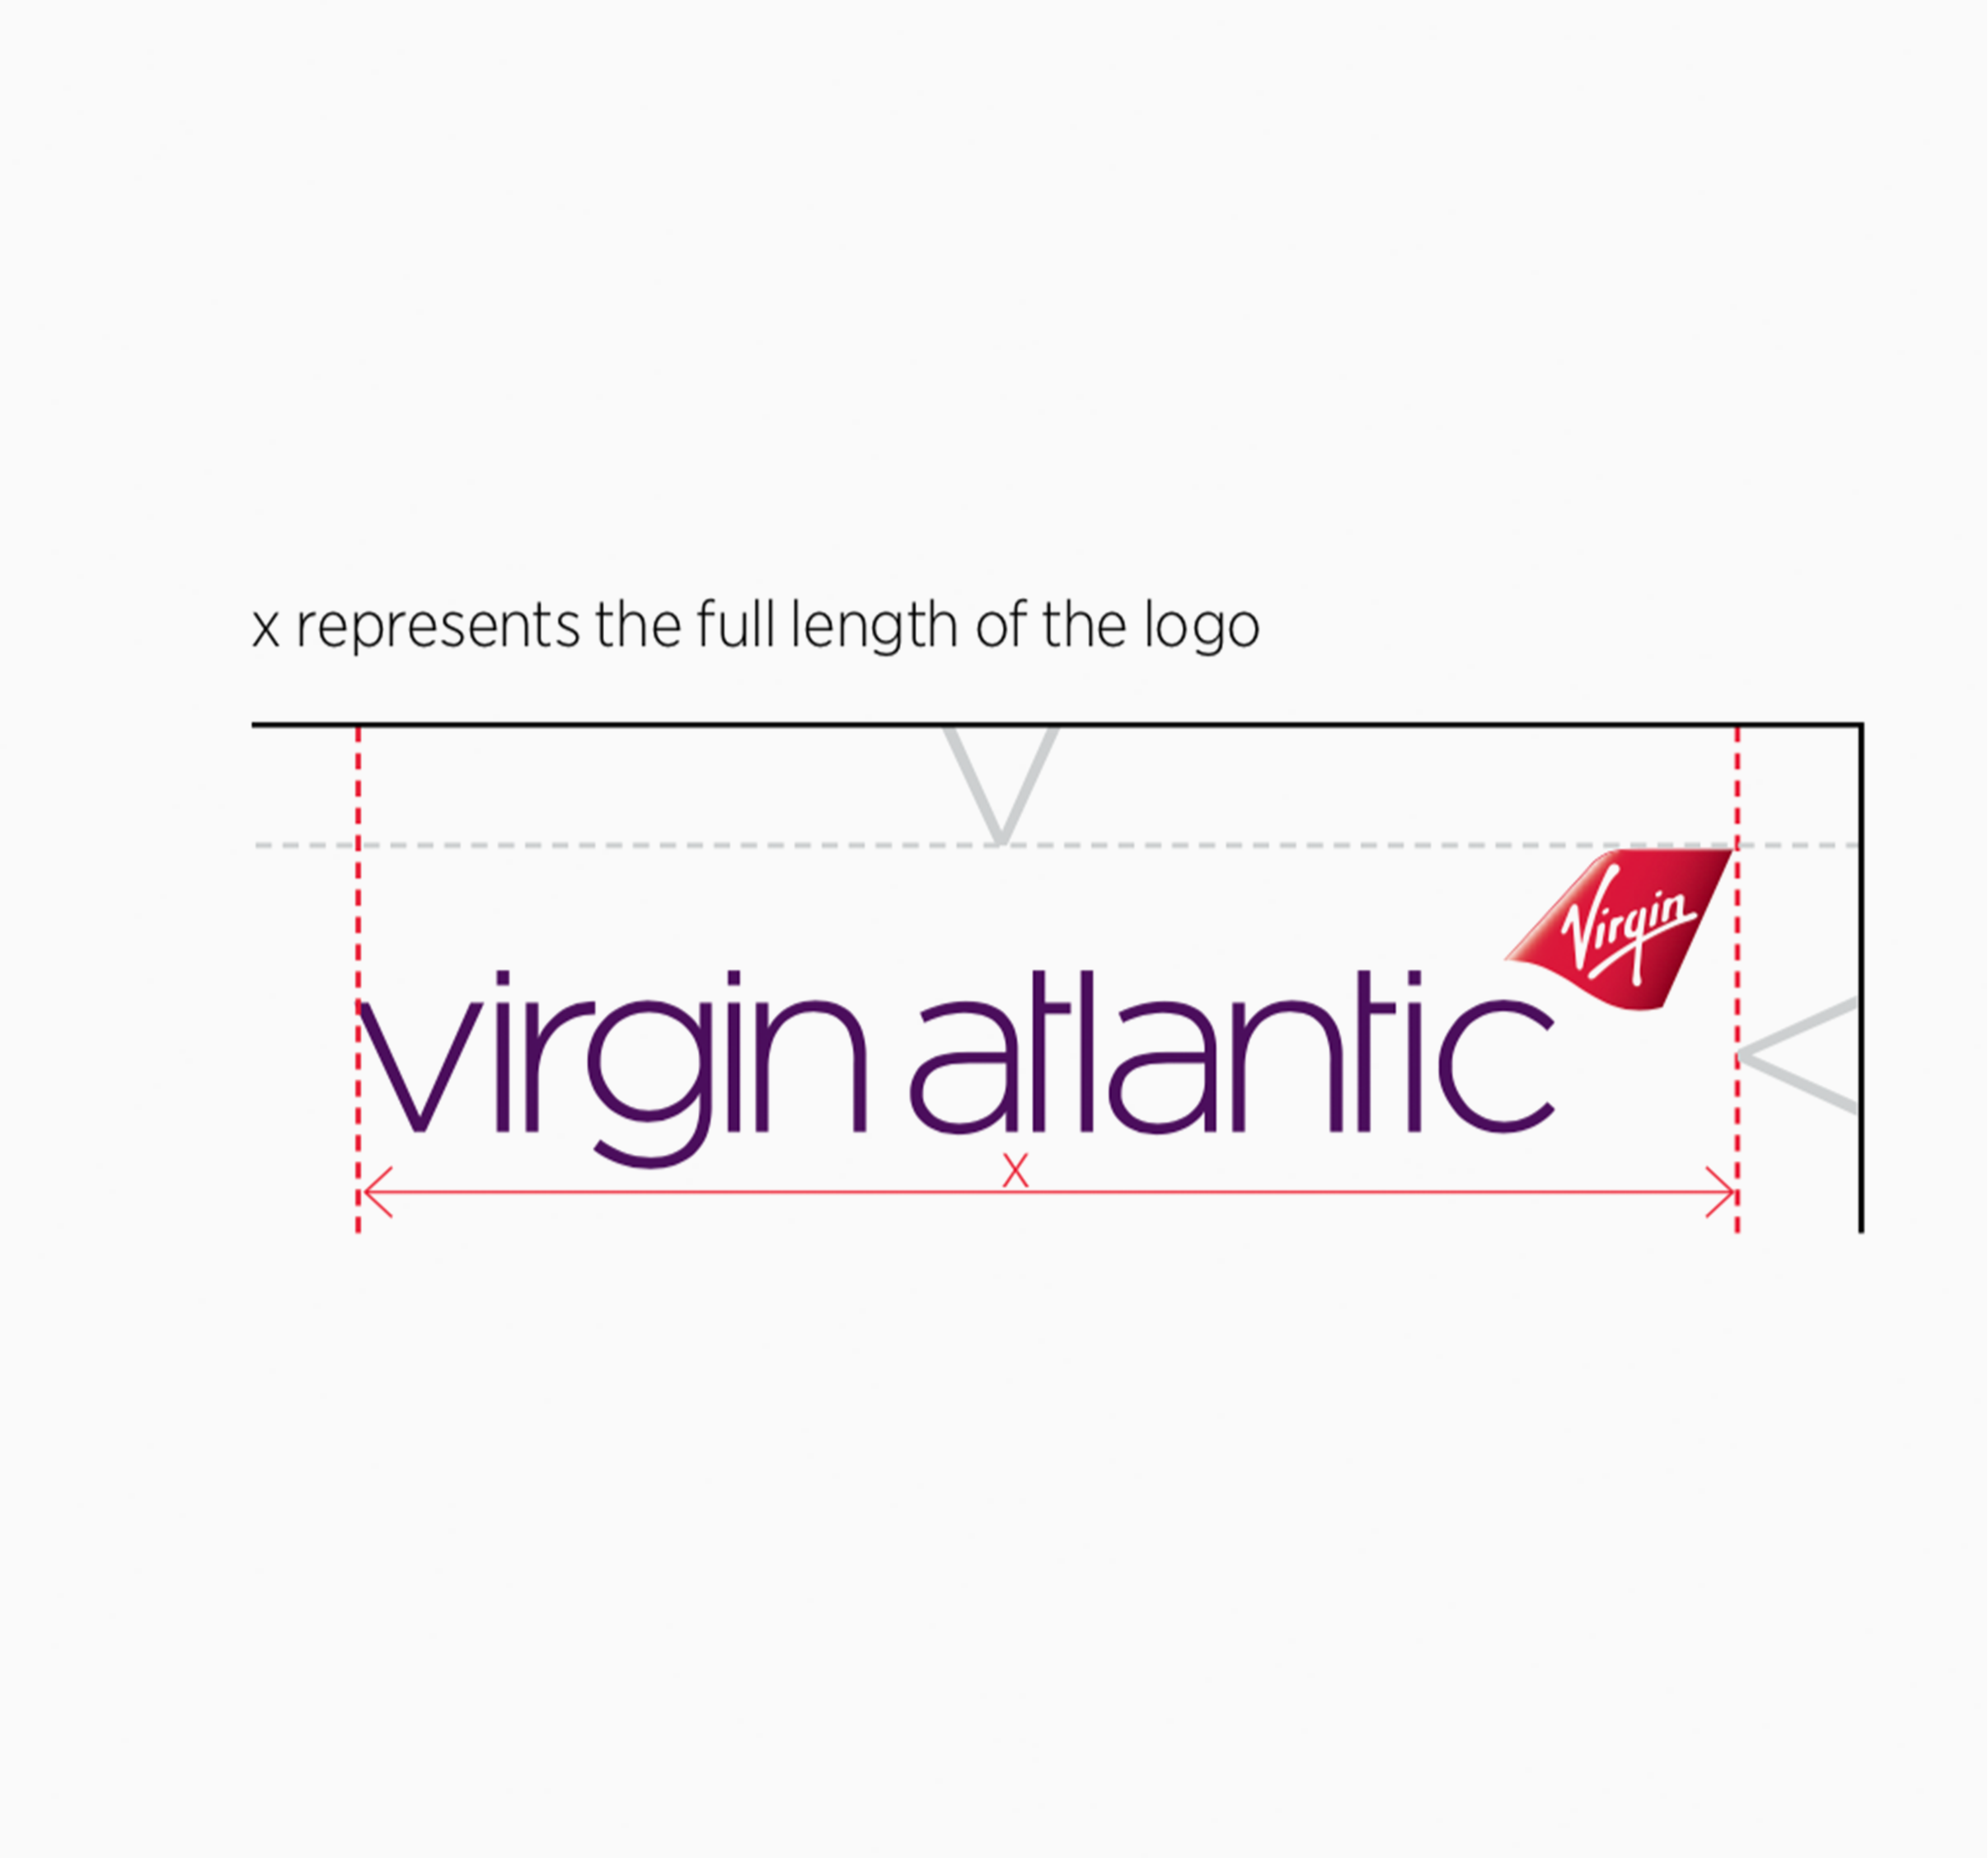 Brand guidelines - Within the guidelines there are specific sizes and safe areas around the logo. The document also details font usage, images, colour codes and illustration styles. My aim was to push the creativity as far as possible while still adhering to the Virgin Atlantic brand guidelines.